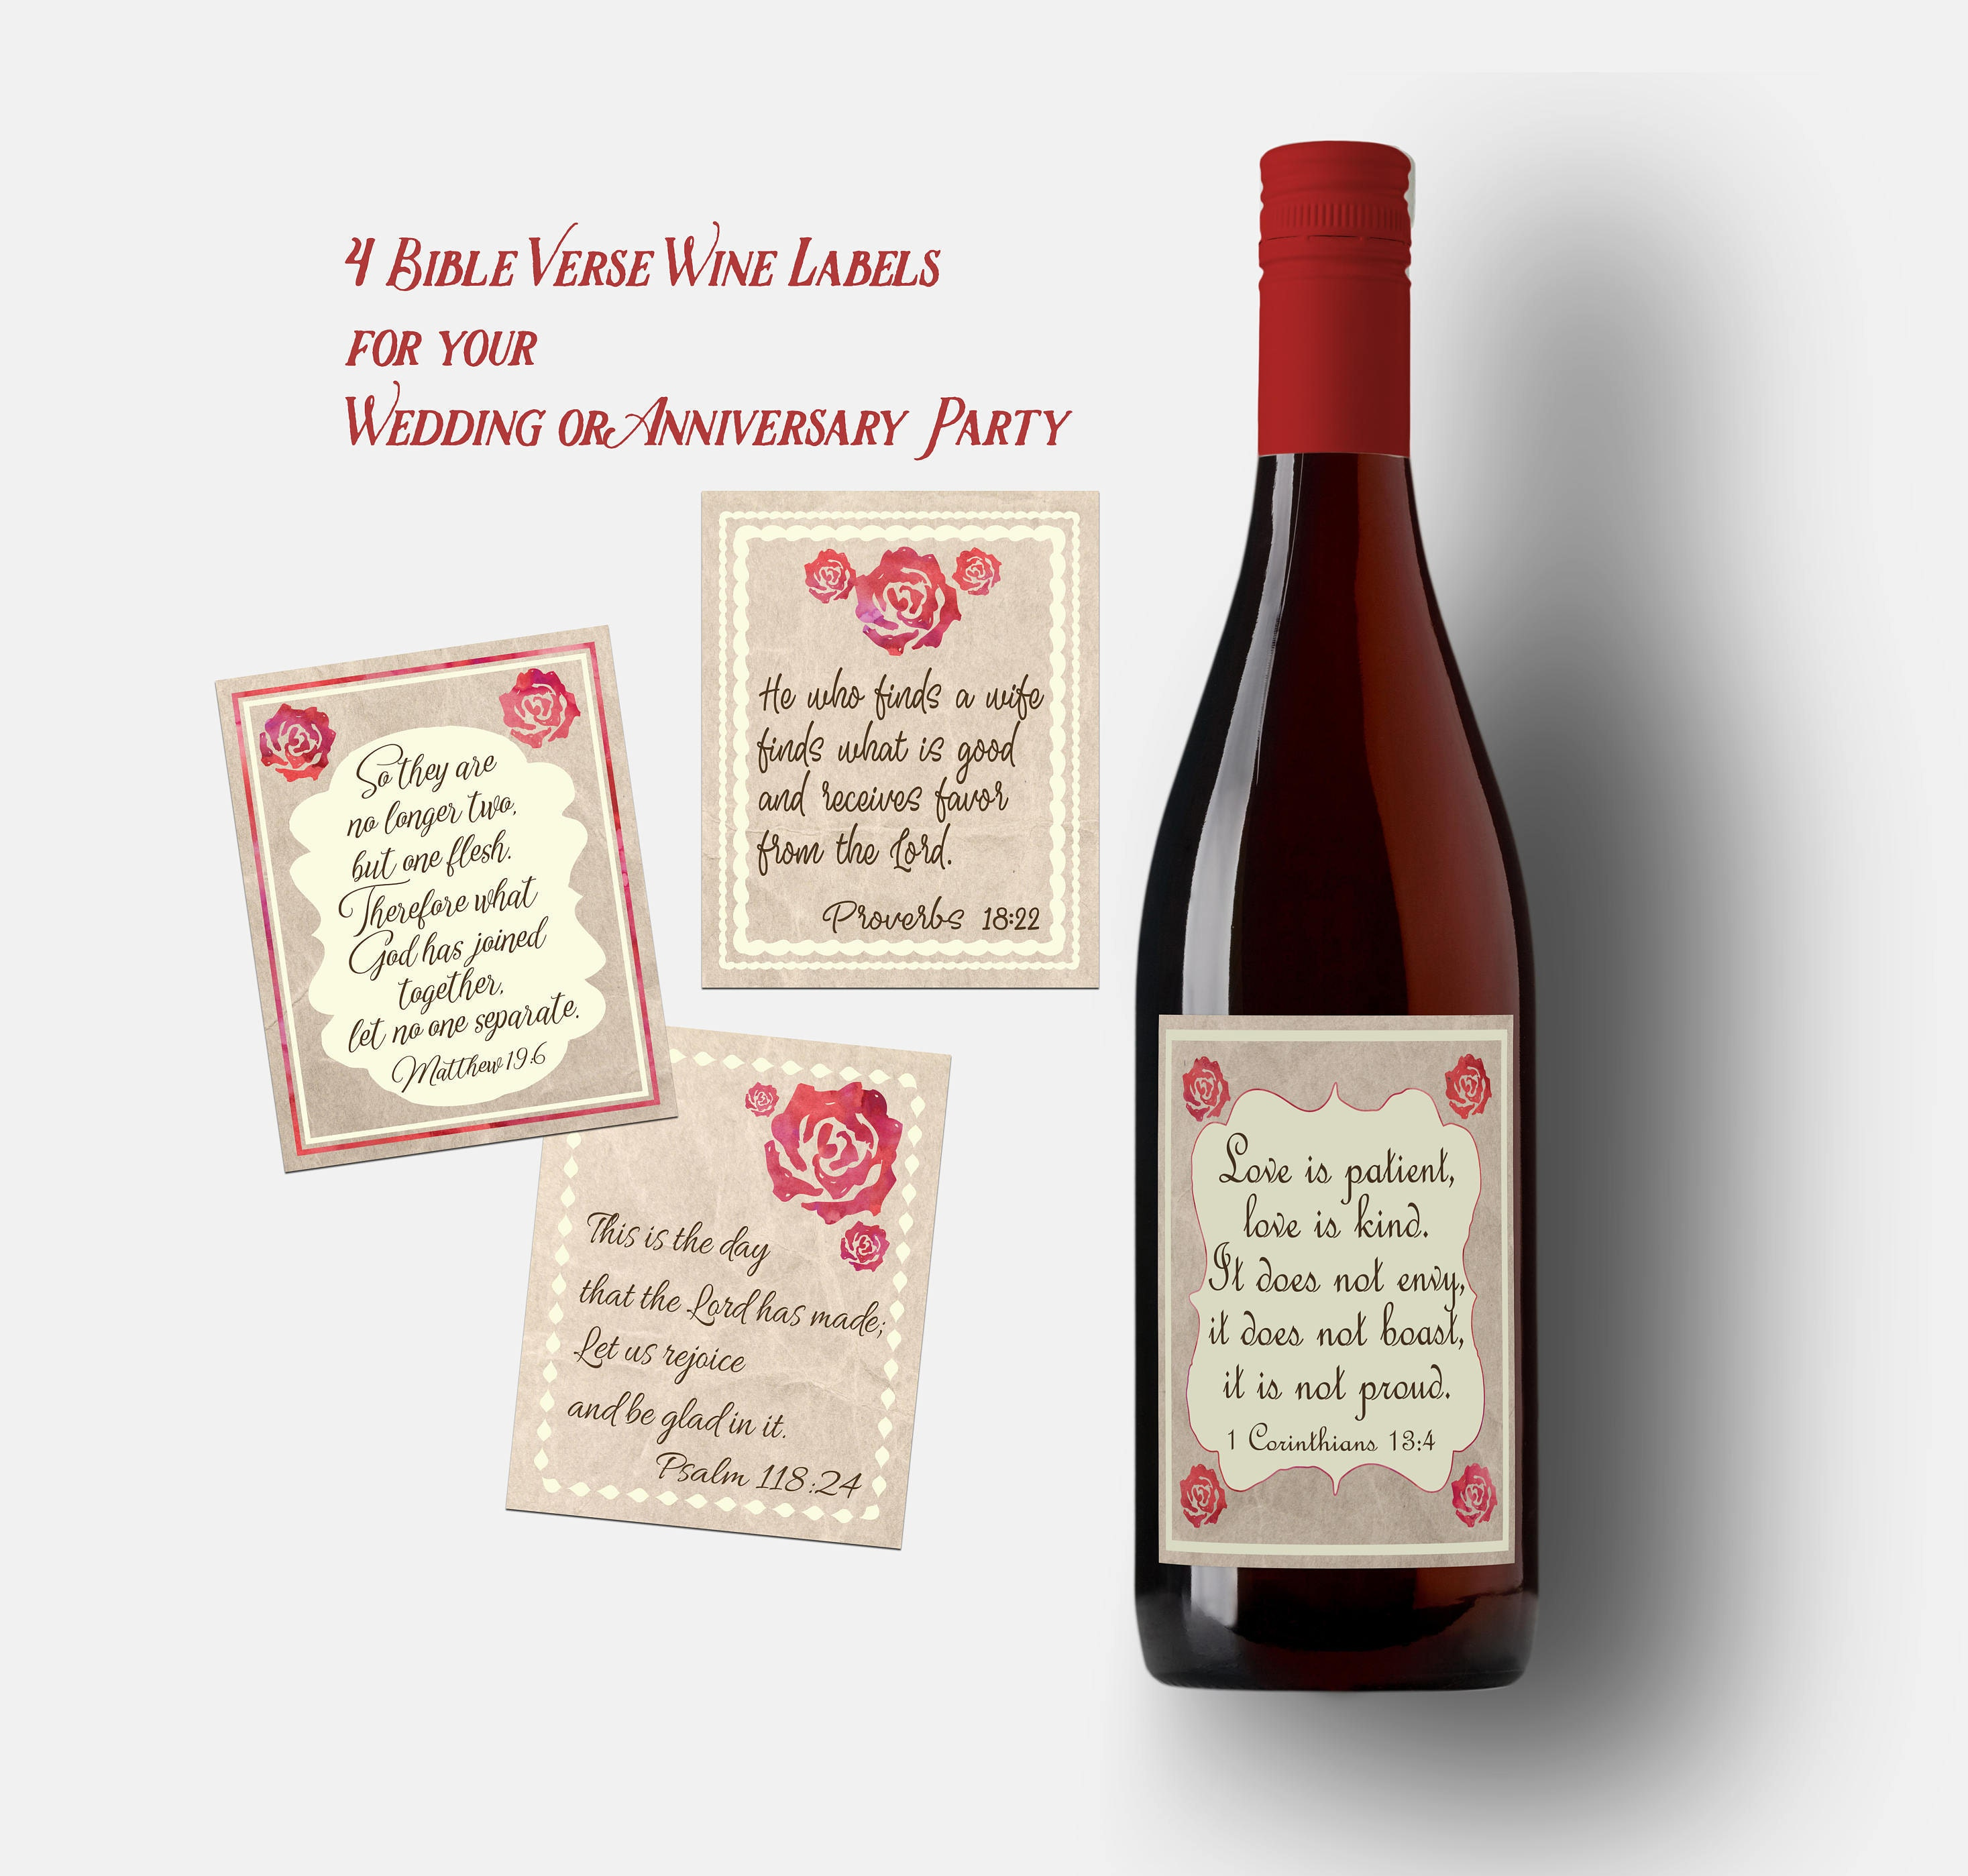 Wedding Wine Labels. Anniversary party wine labels. Bible